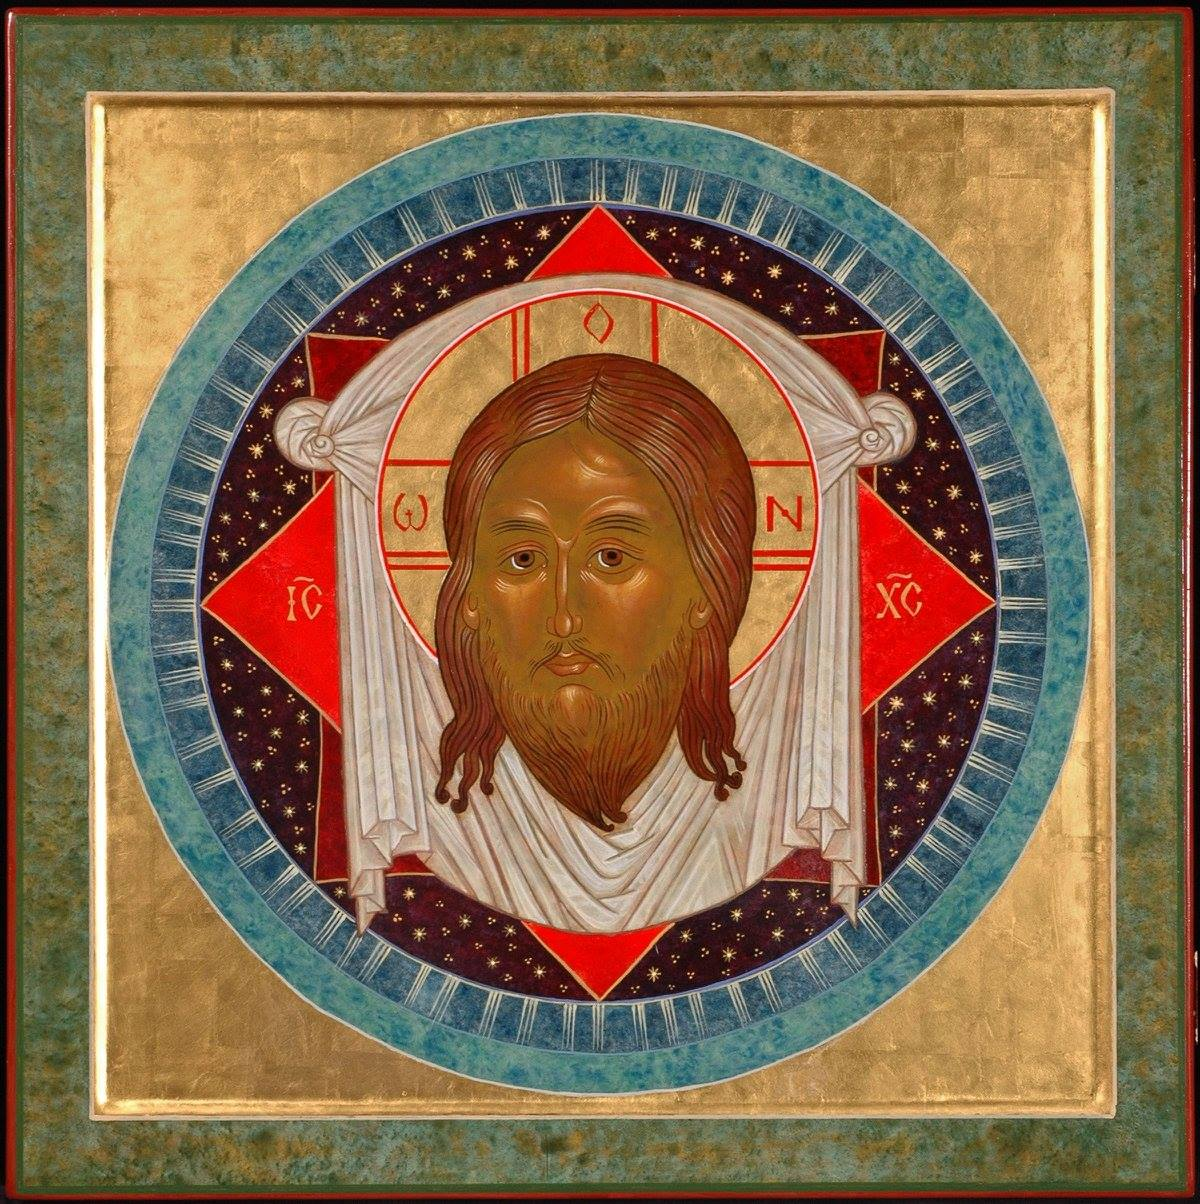 Icon of the Holy Veil, 2015, by the hand of Faye Drobnic